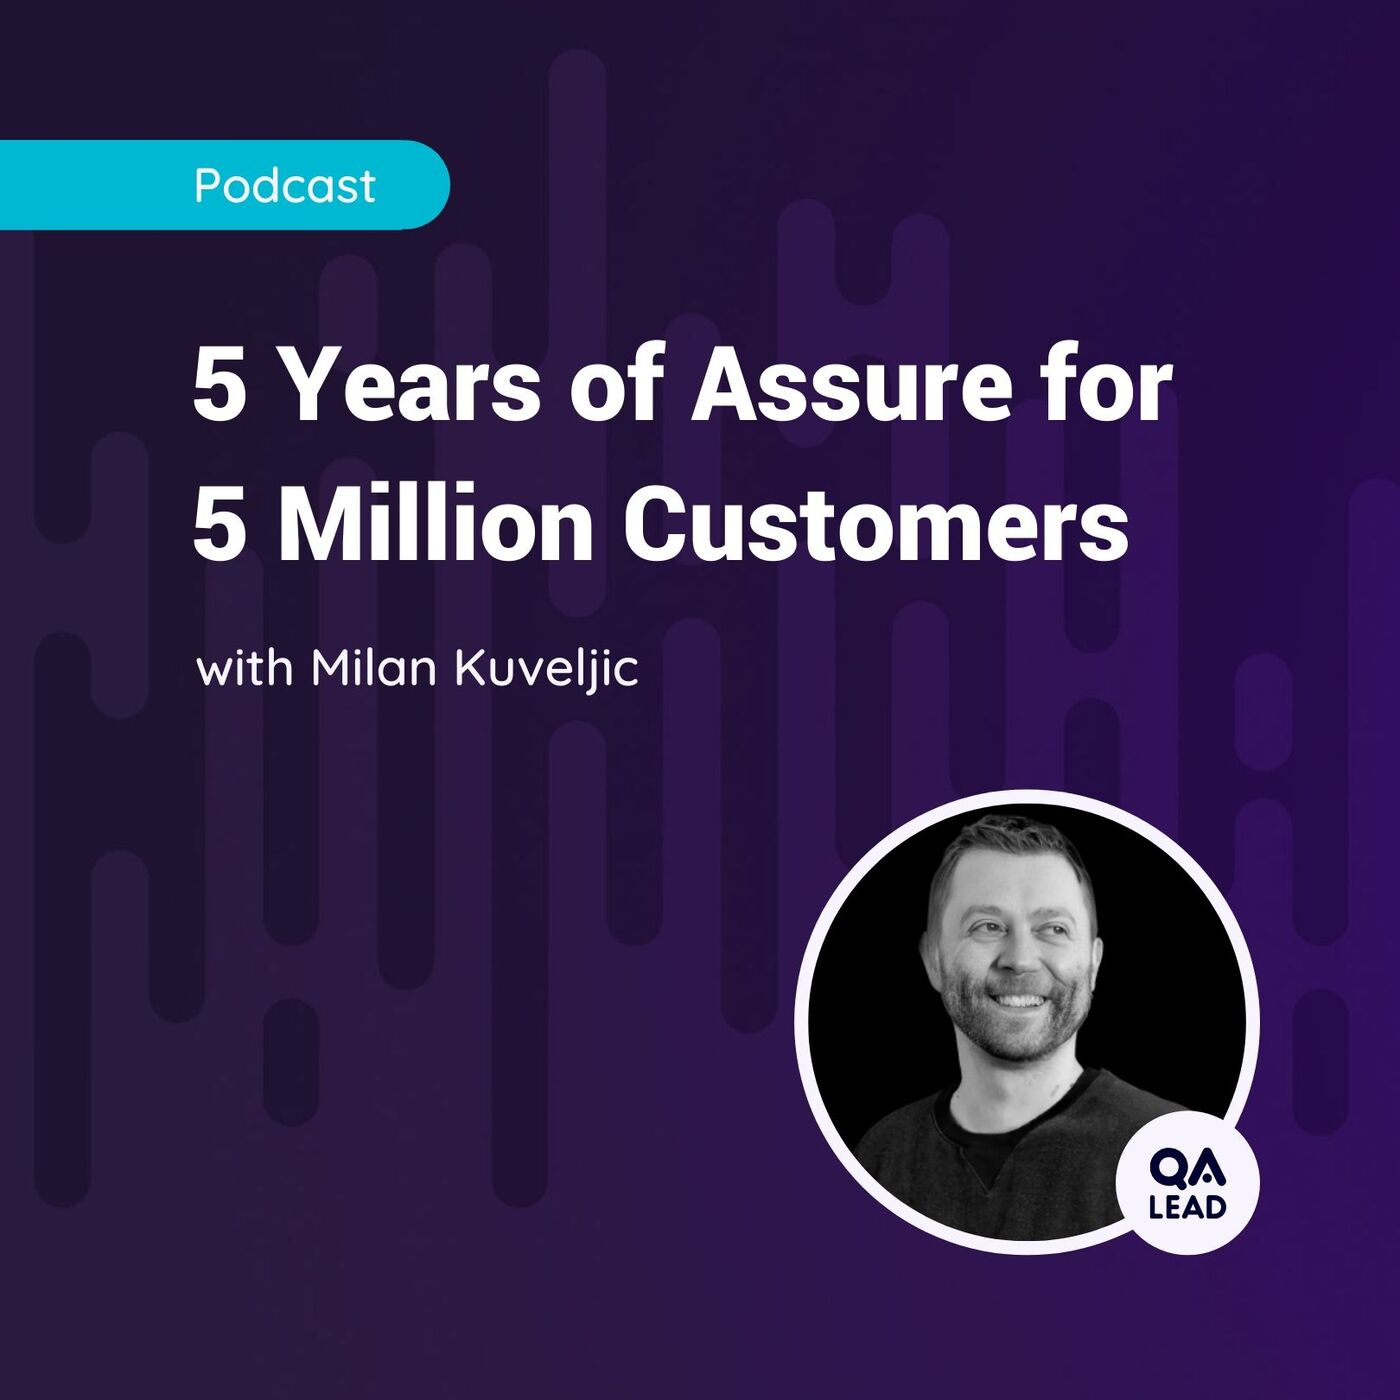 5 Years of Assure for 5 Million Customers (with Milan Kuveljic from N26 Group)